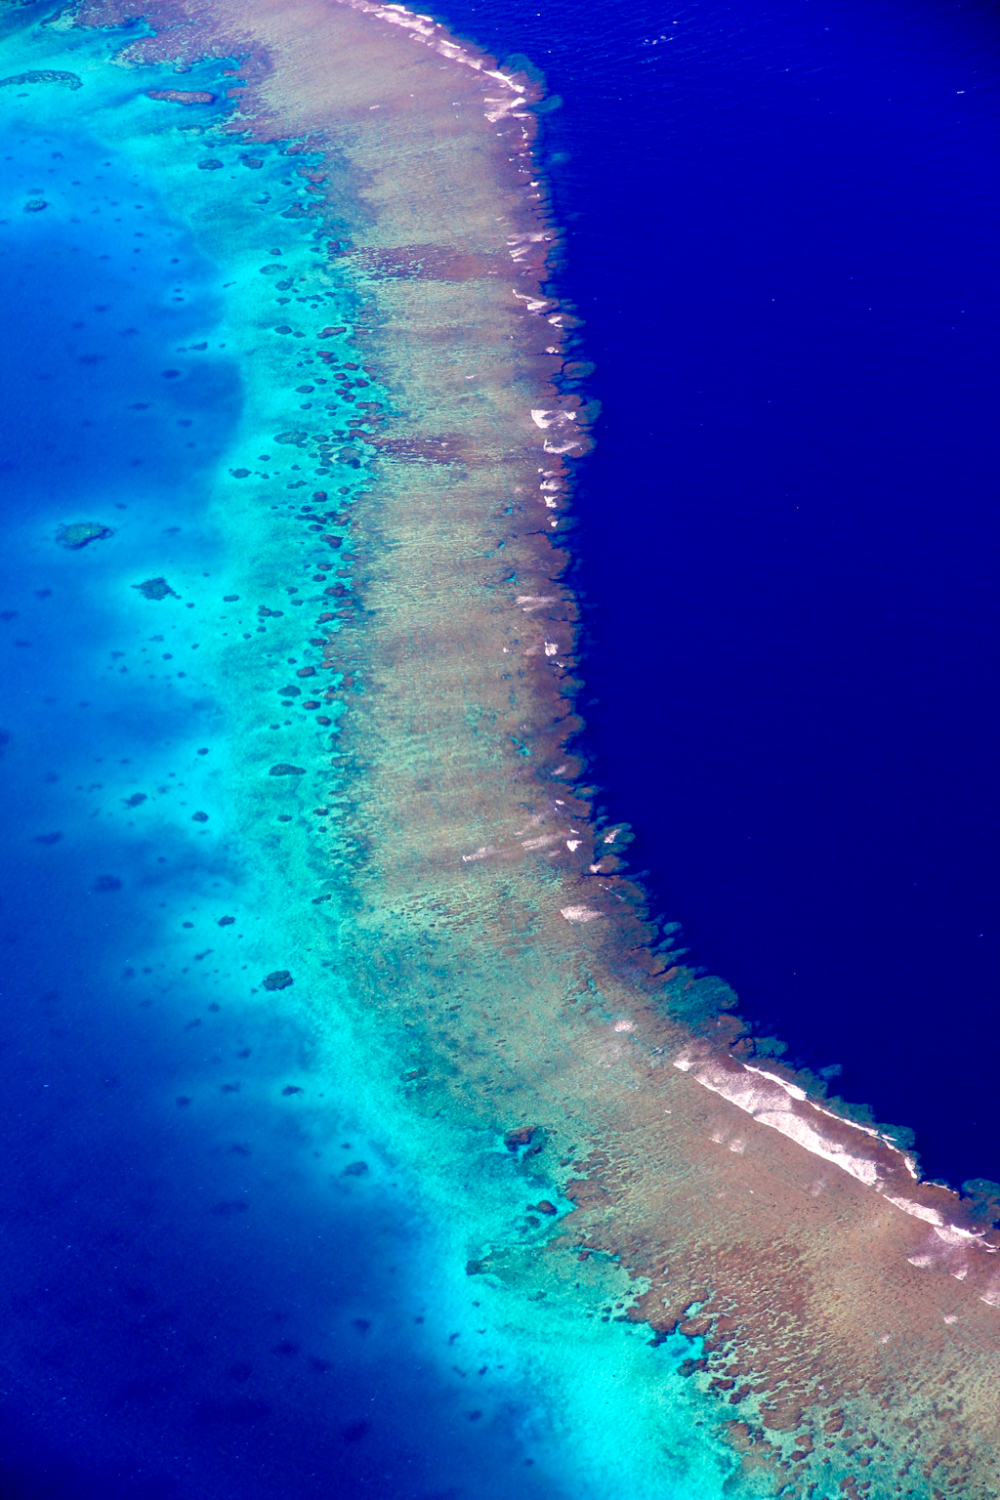 Coral reefs around Fiji Islands from a plane